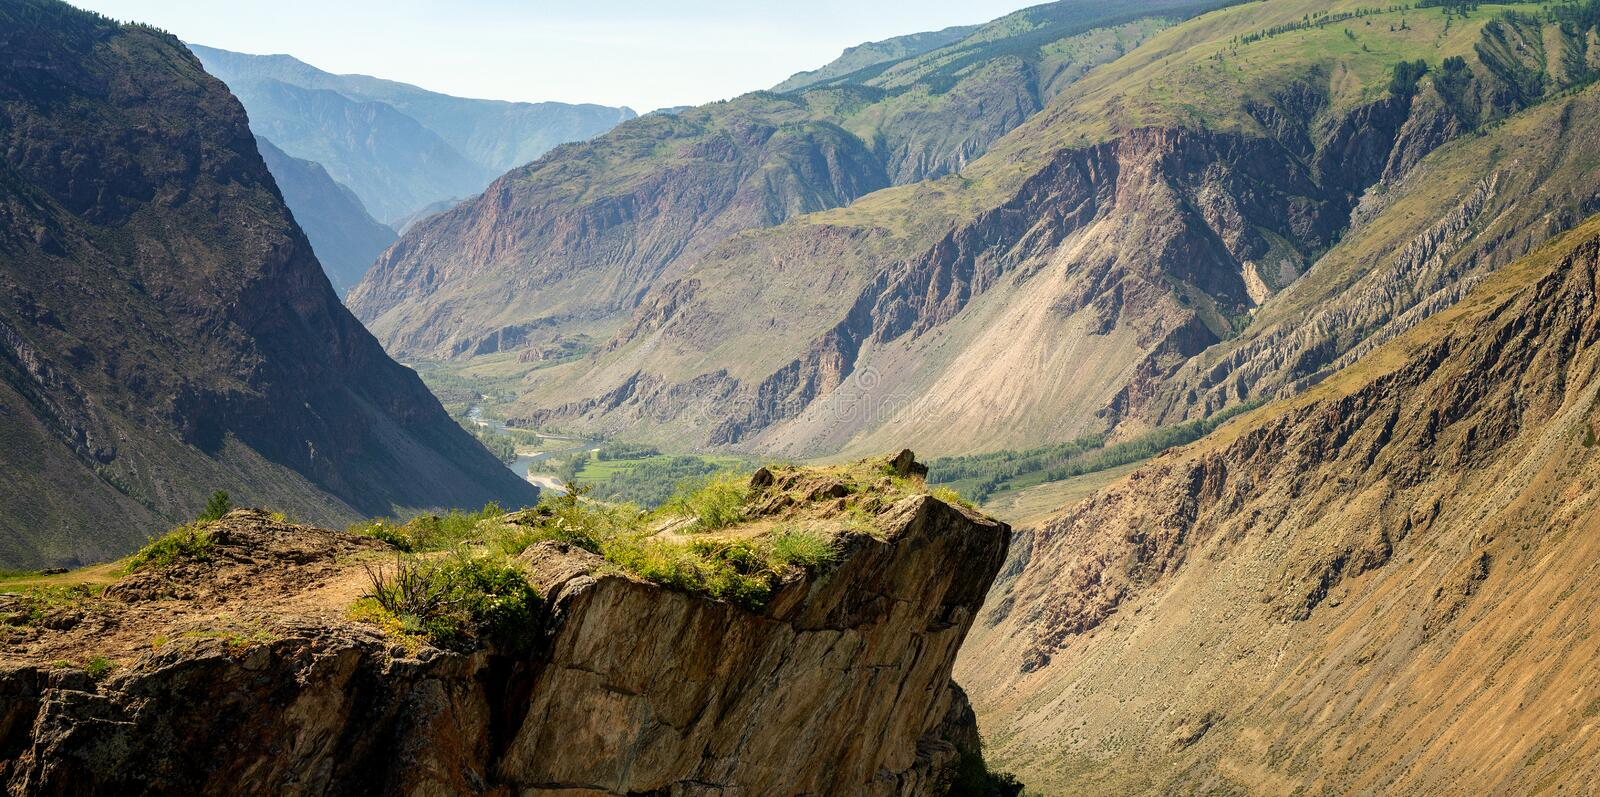 View of katu-Yaryk gorge, Gorny Altai, Russia royalty free stock photo